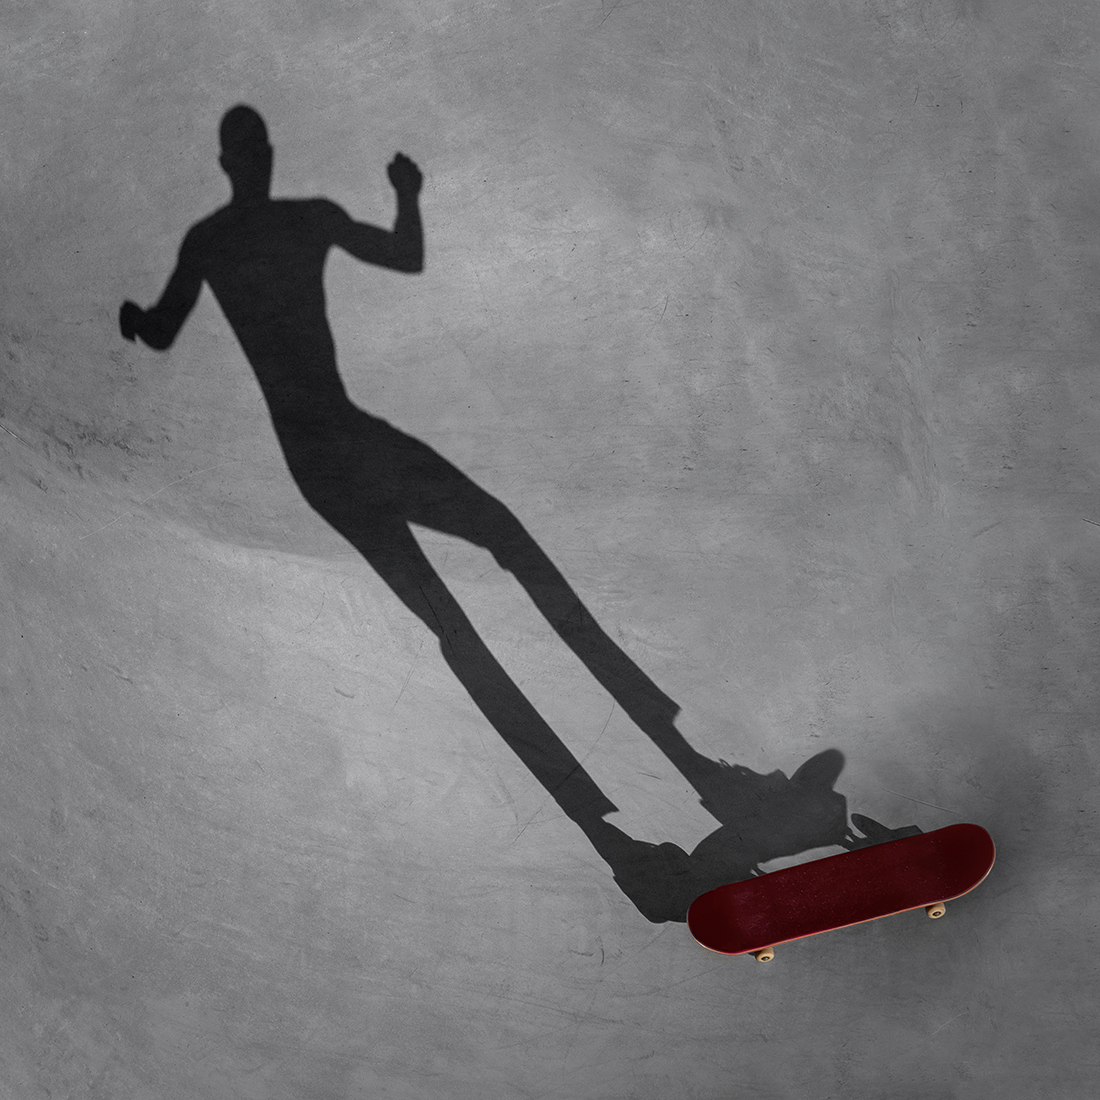 Shadow Skater